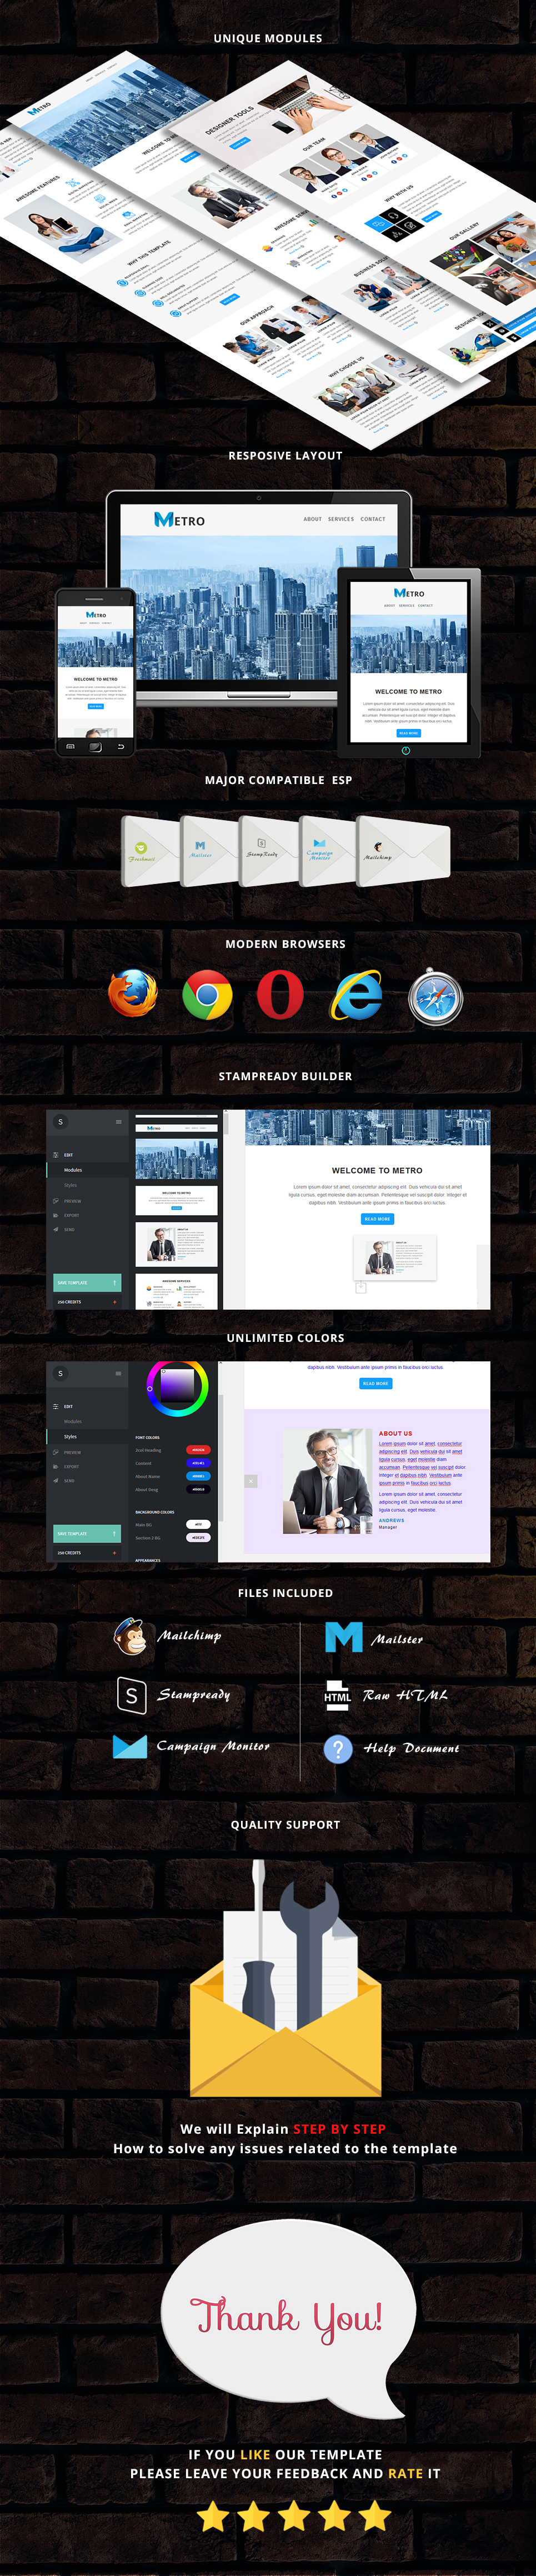 Metro - Responsive Email Template + Stampready Builder